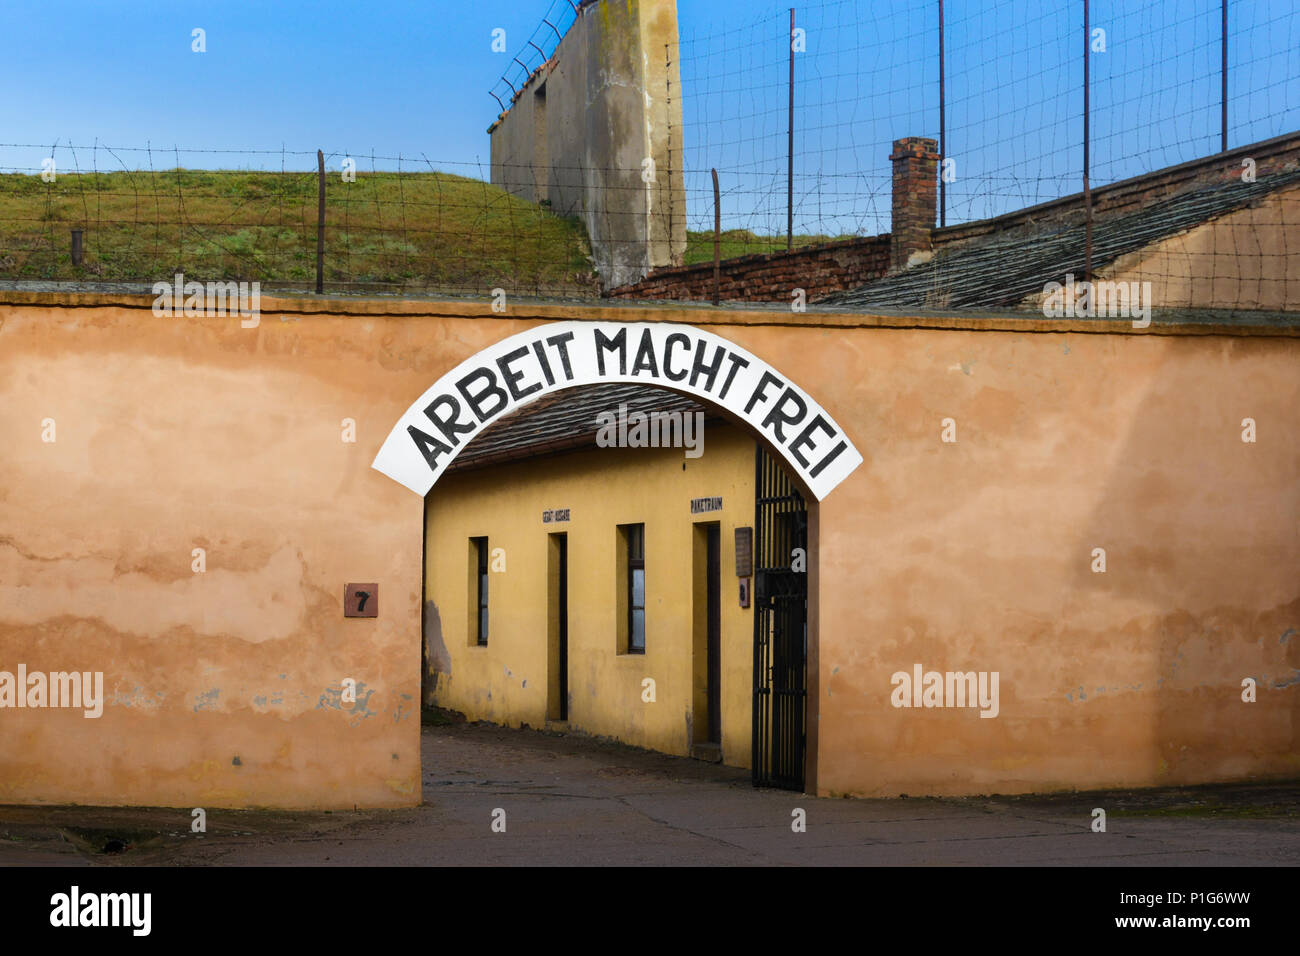 Terezin (Theresienstadt) Concentration Camp with Arbeit Macht Frei sign at the entrance. - Stock Image